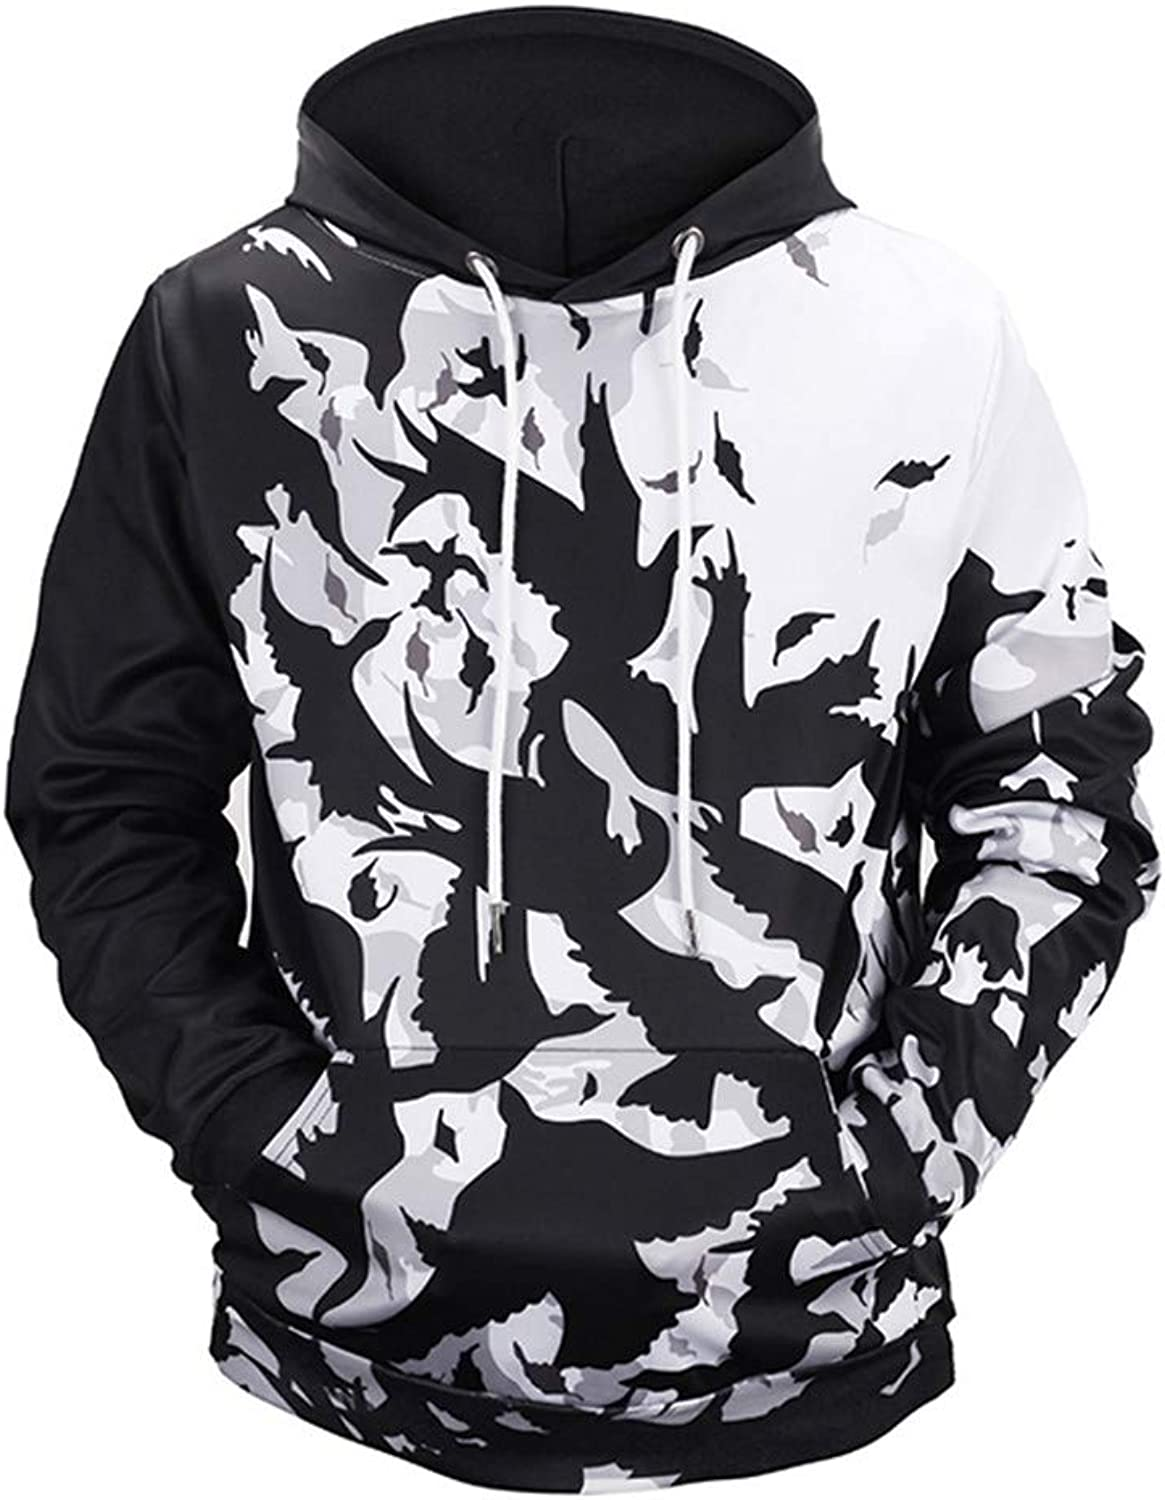 Nanquan Men Casual Full Zip Hoodie Hooded Sweatshirt Hooded Jacket